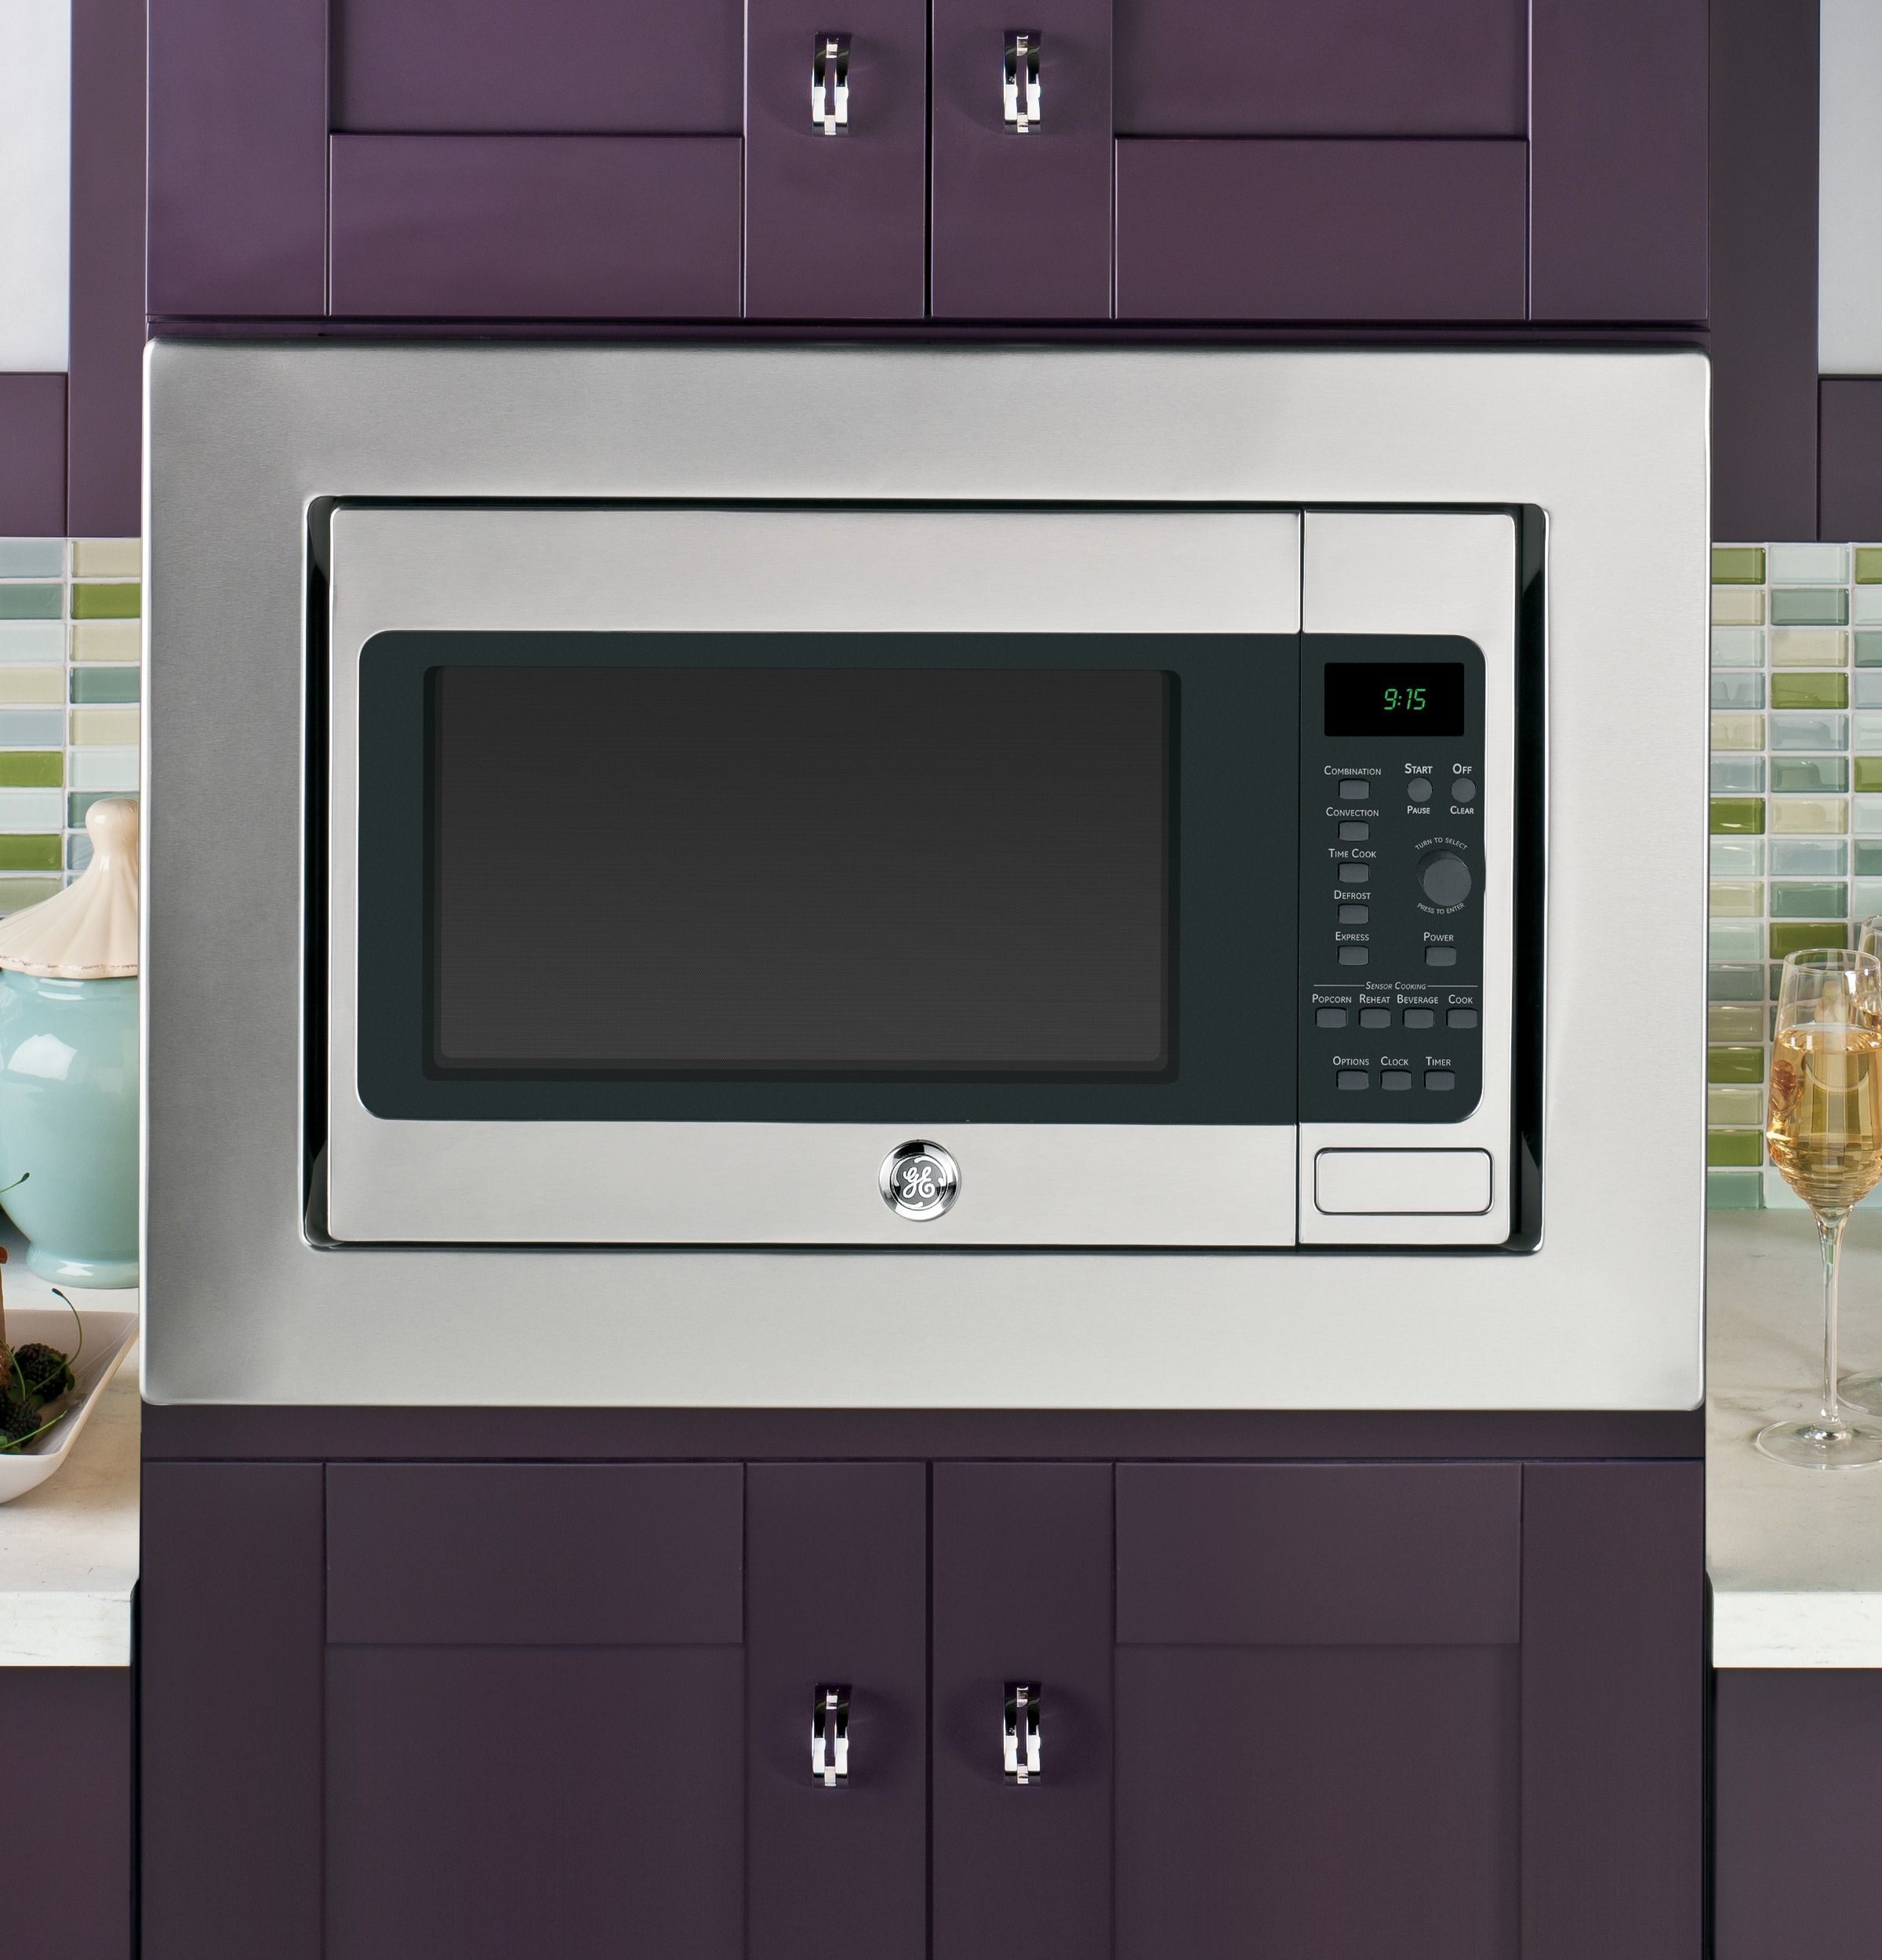 Best Microwave Convection Oven Combo In Case You Re The Market For A Countertop Cuisinart